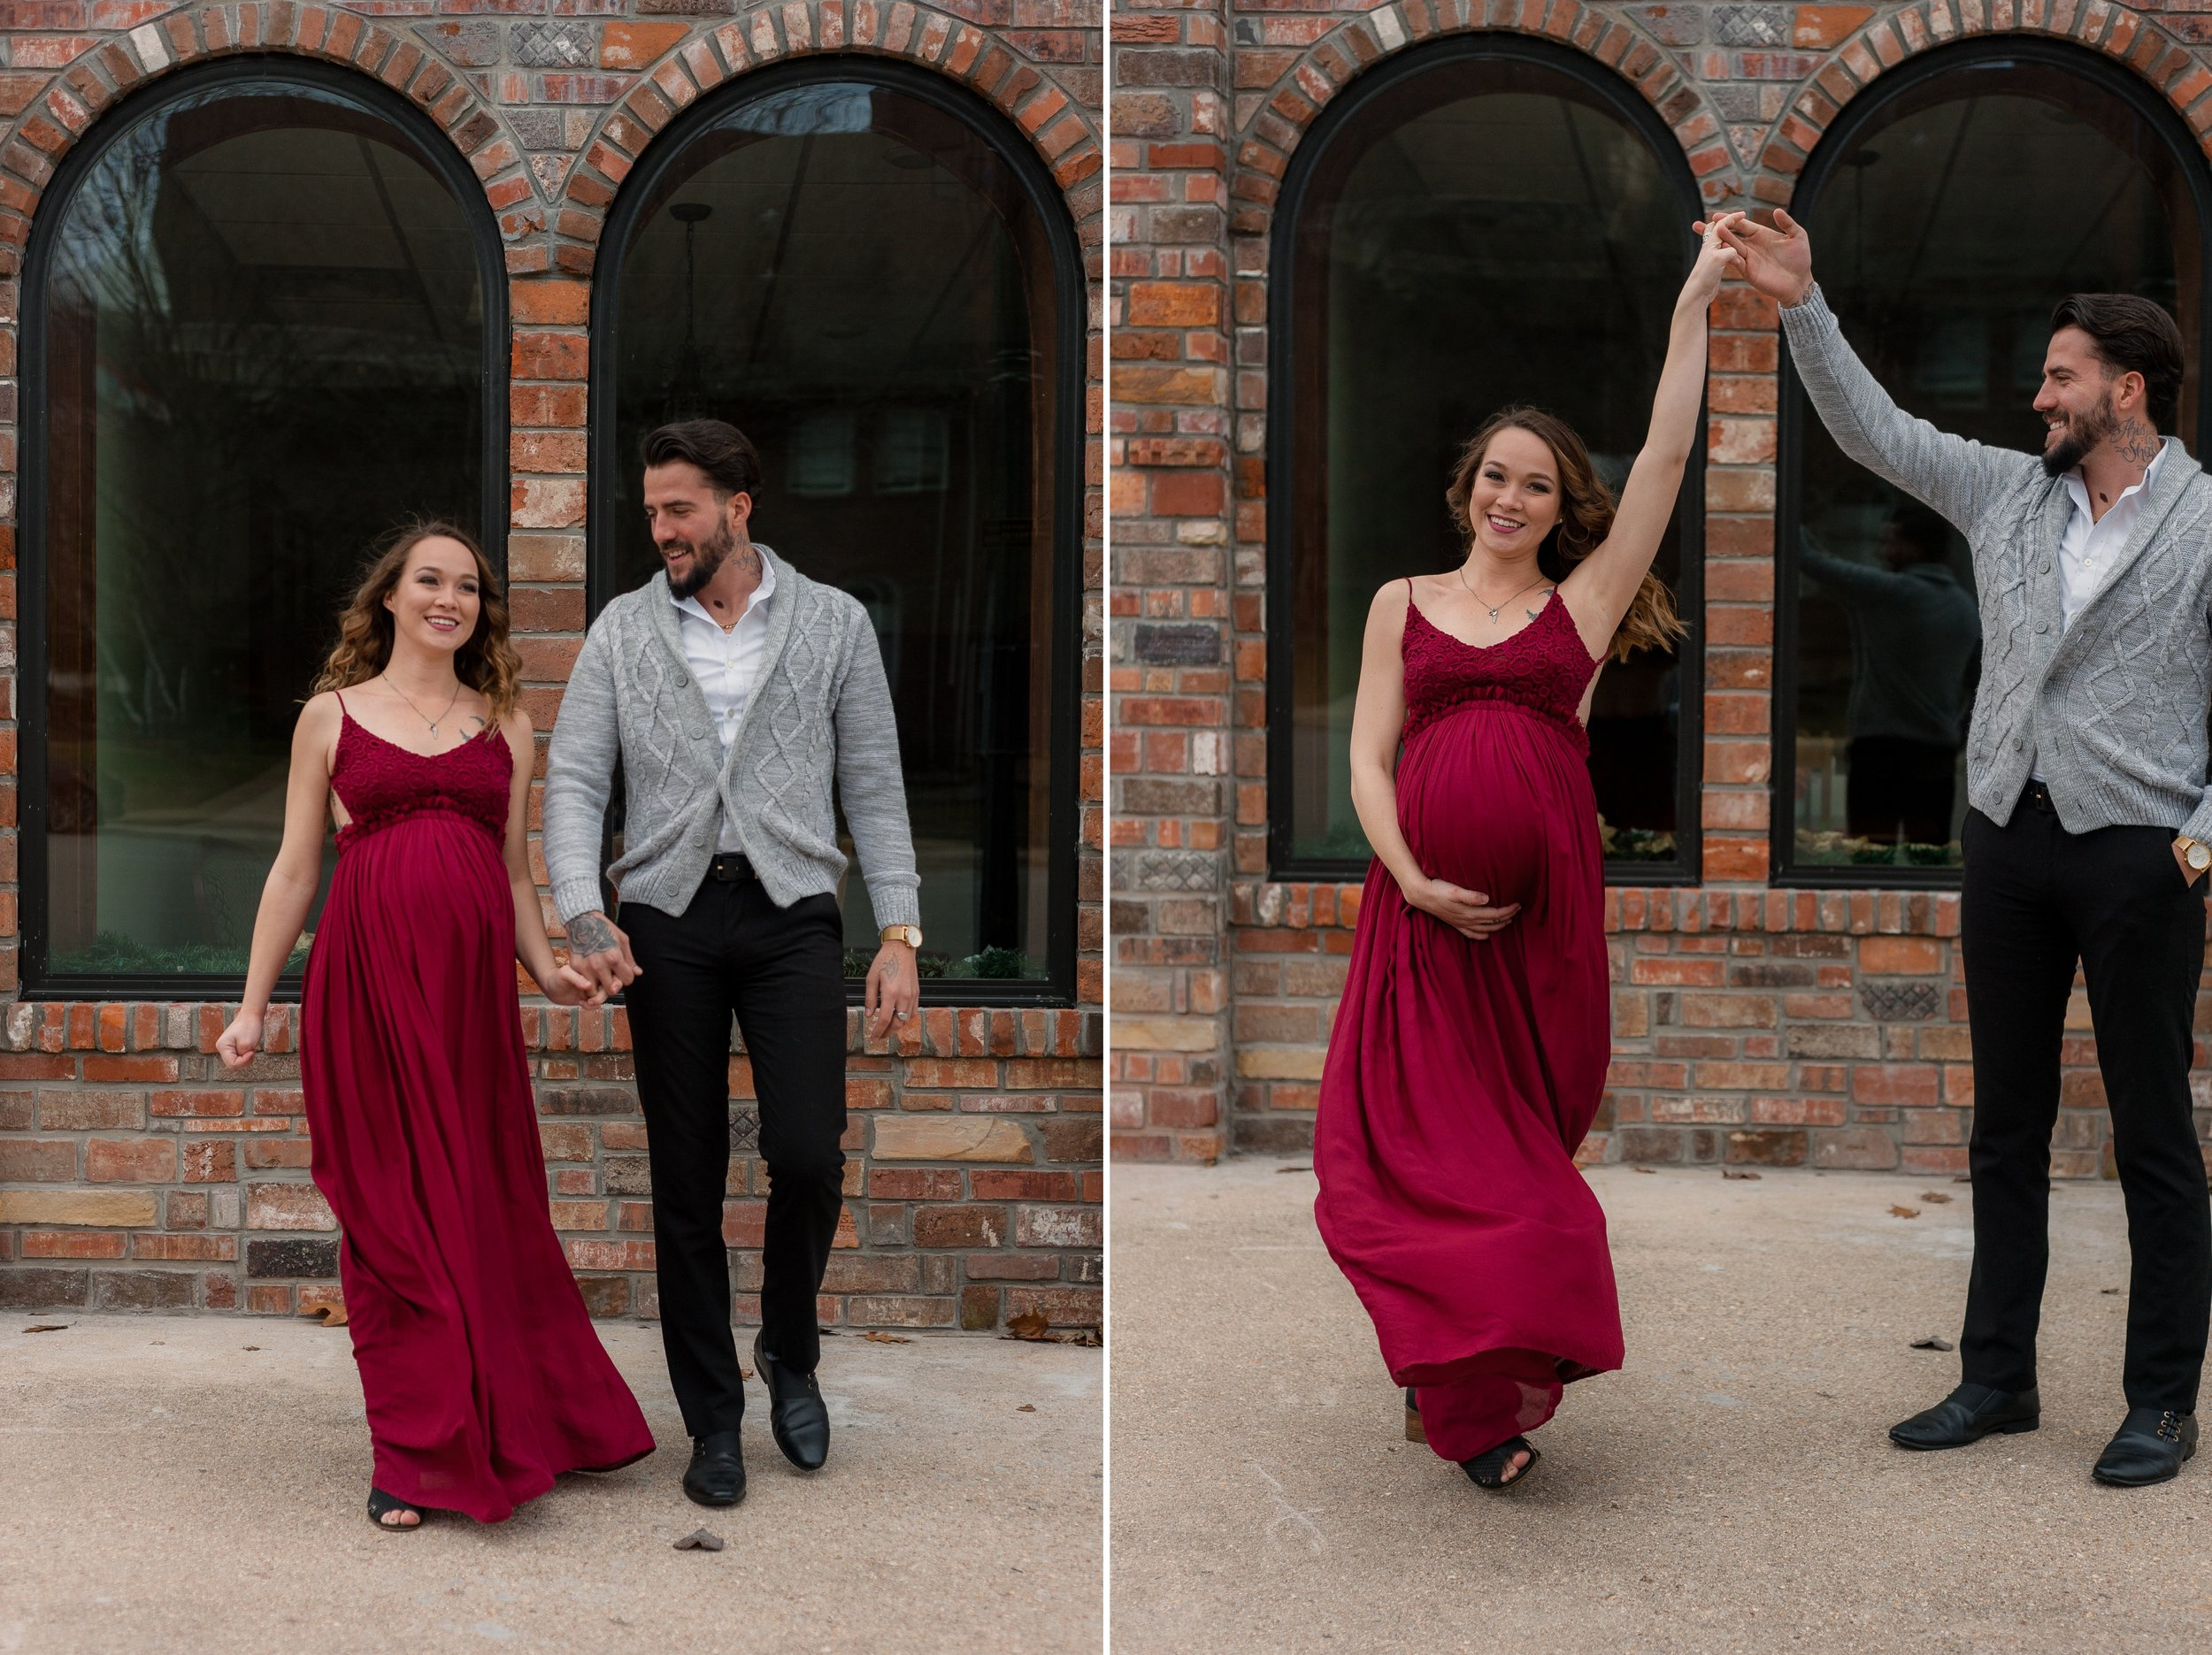 stlouis_maternity_couples_poses_photo_ideas_photography_travel_kansas_city_springfield_fortleonardwood_family_senior_d 6.jpg